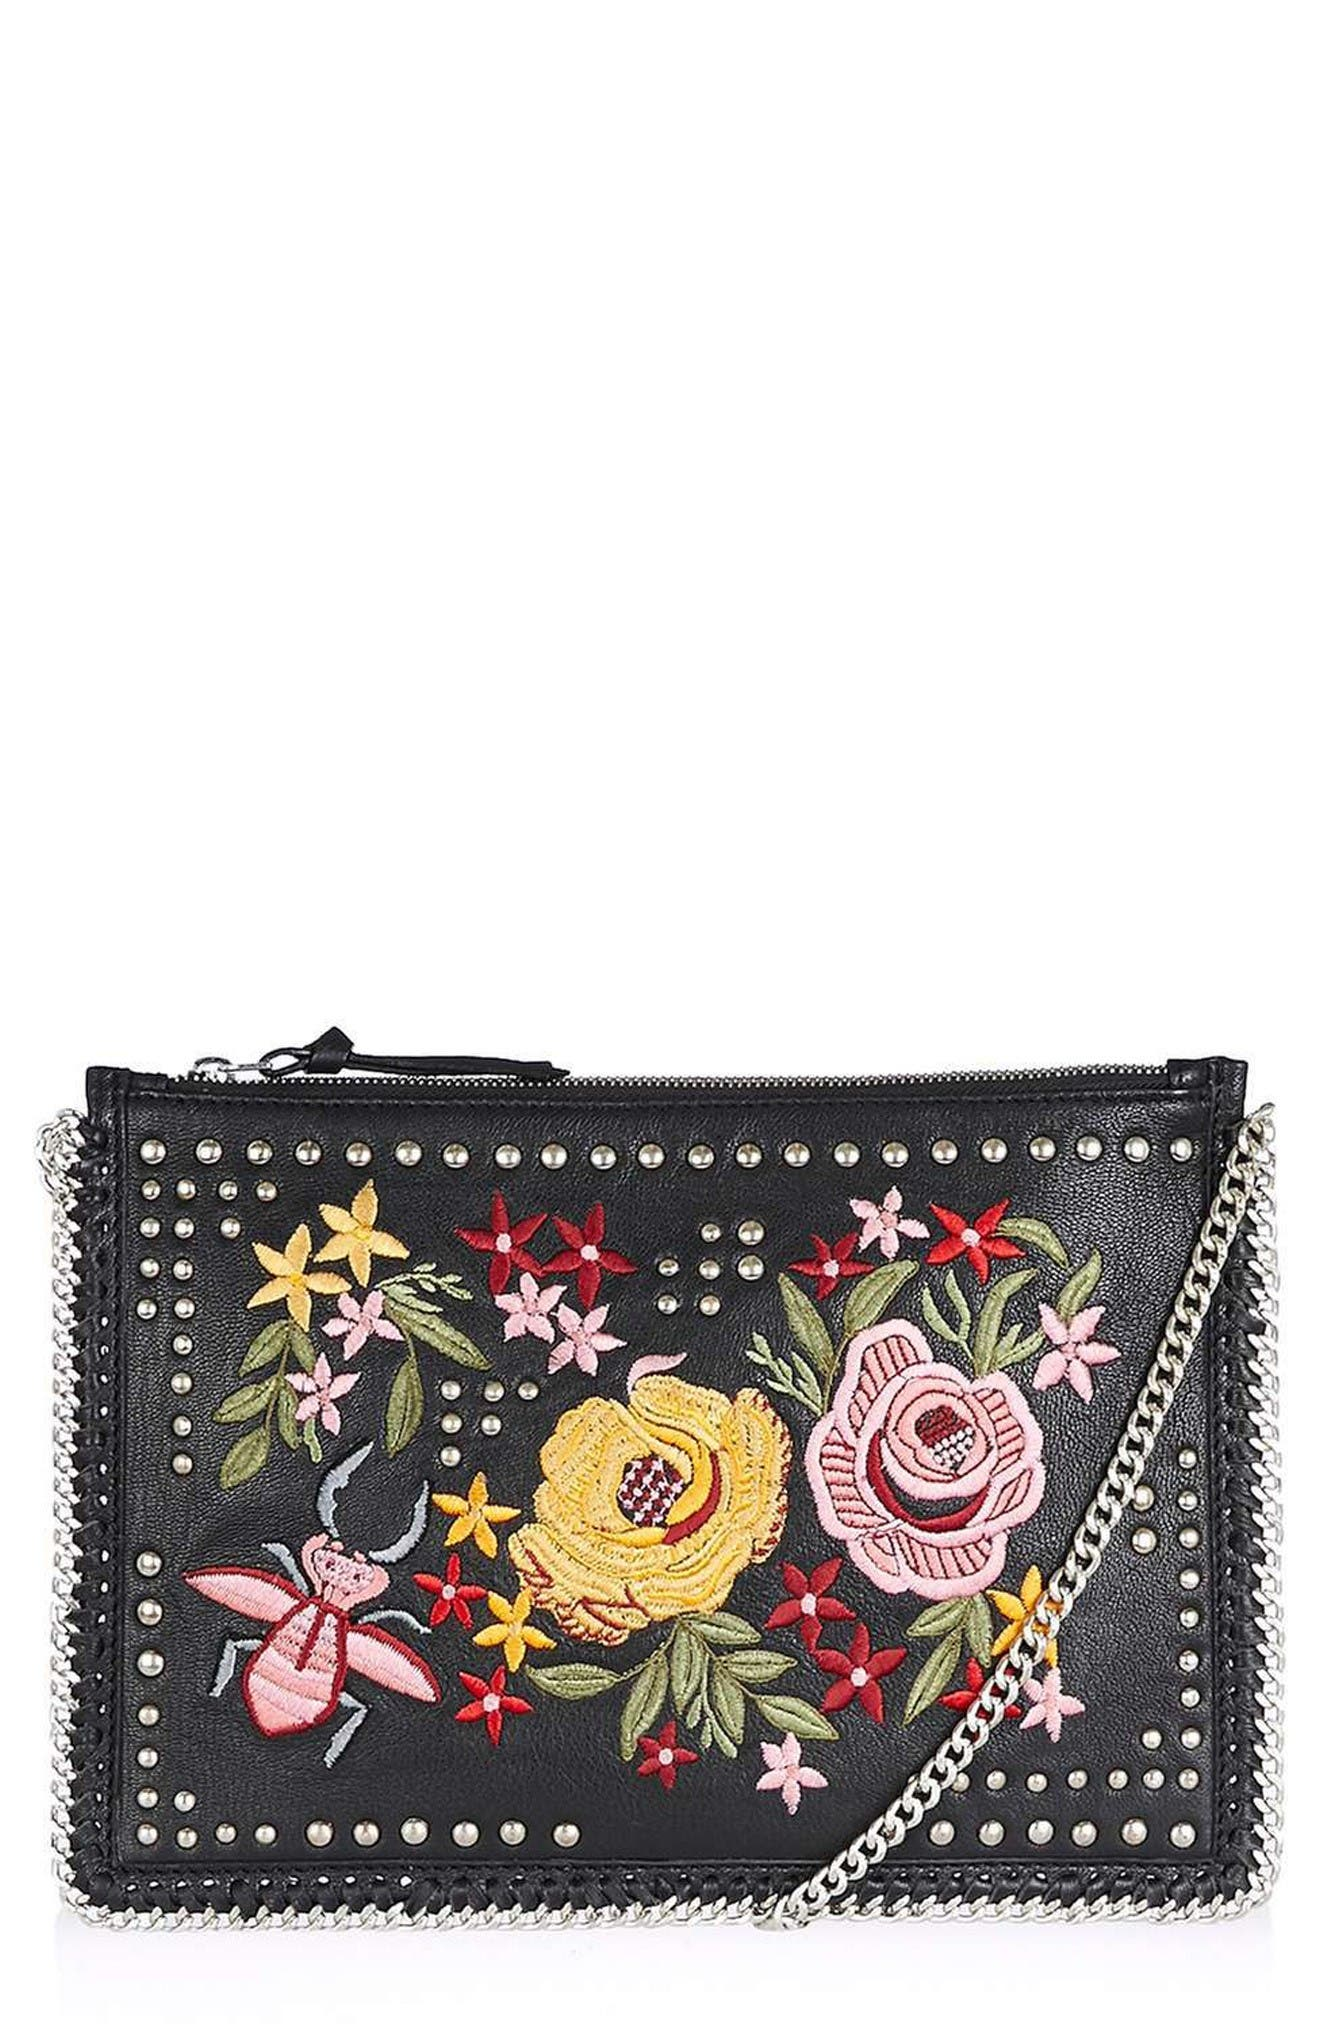 Alternate Image 1 Selected - Topshop Oto Embroidered Crossbody